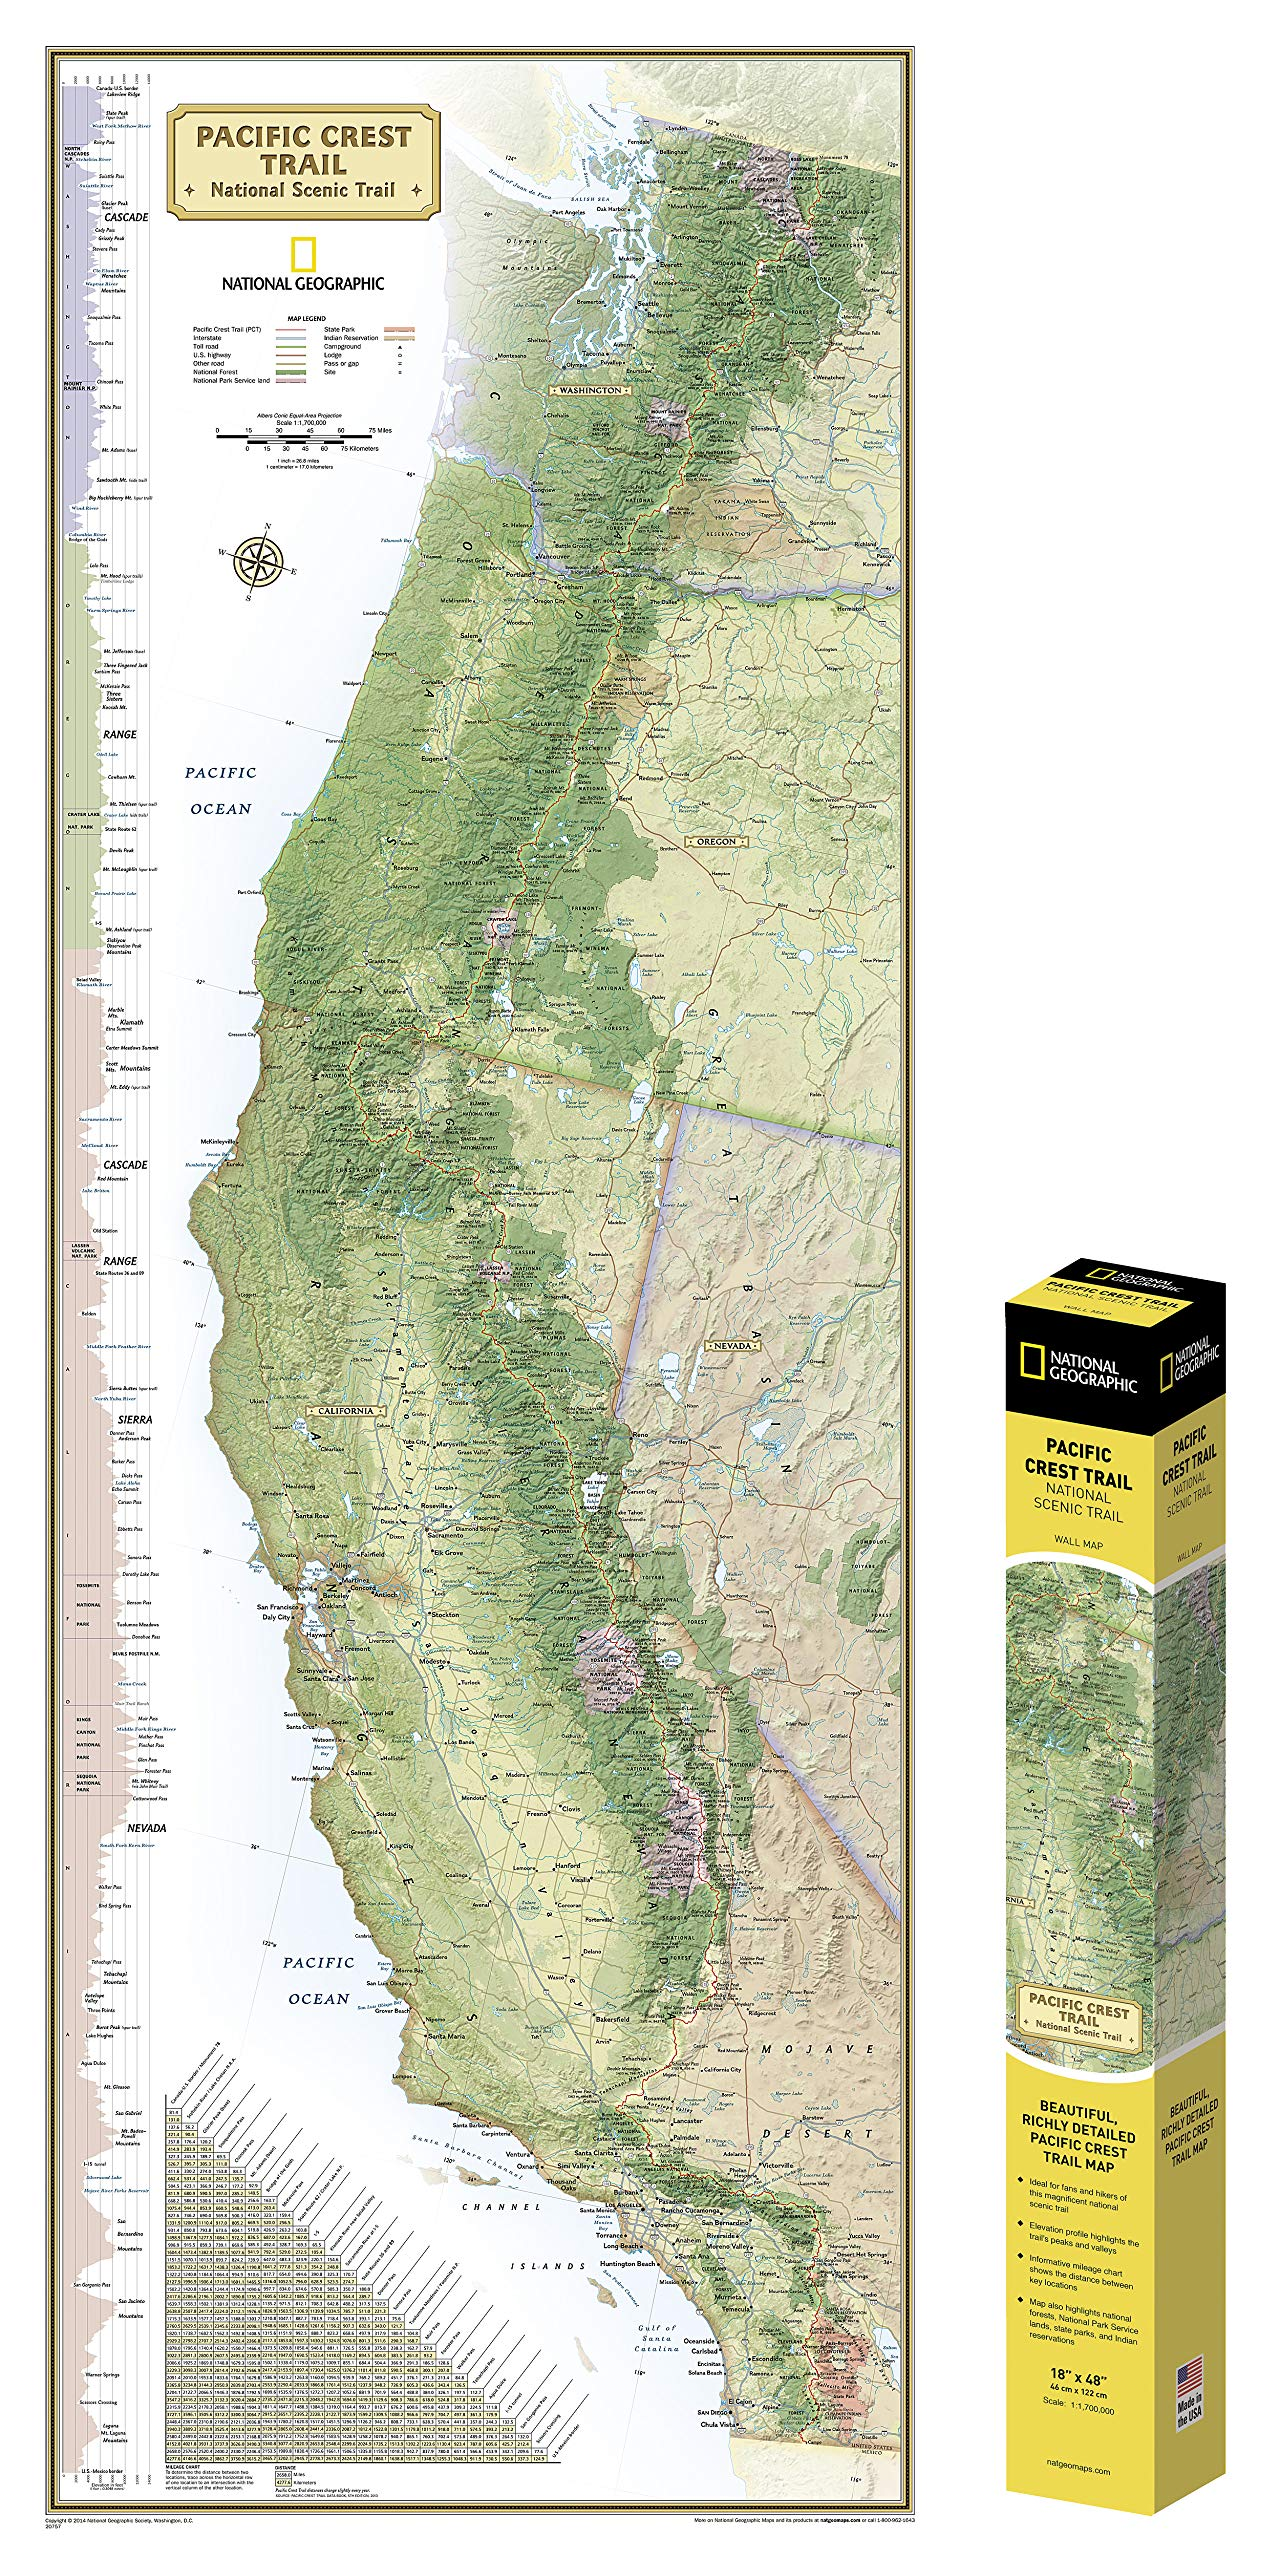 Pacific Crest Trail Oregon Map National Geographic: Pacific Crest Trail Wall Map in gift box Wall